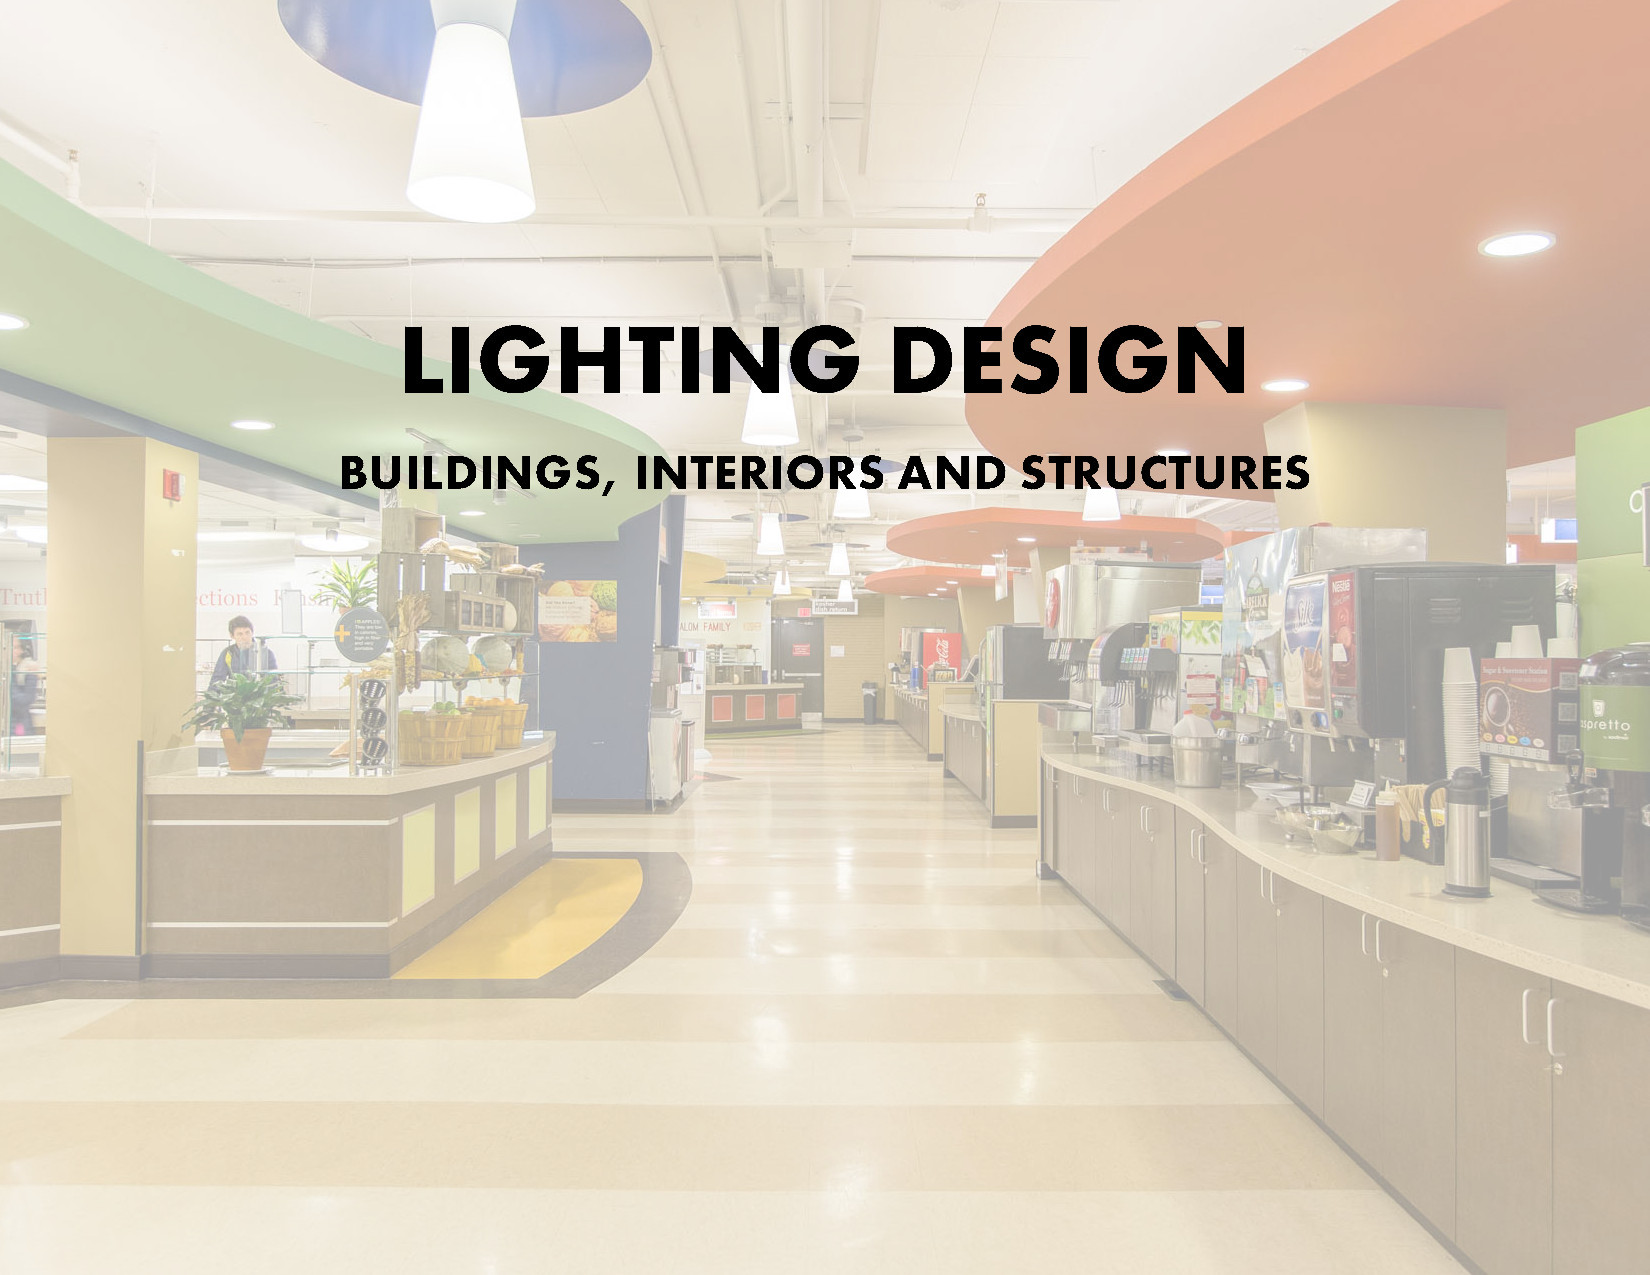 Lighting Designs for Buildings, Interiors and Structures